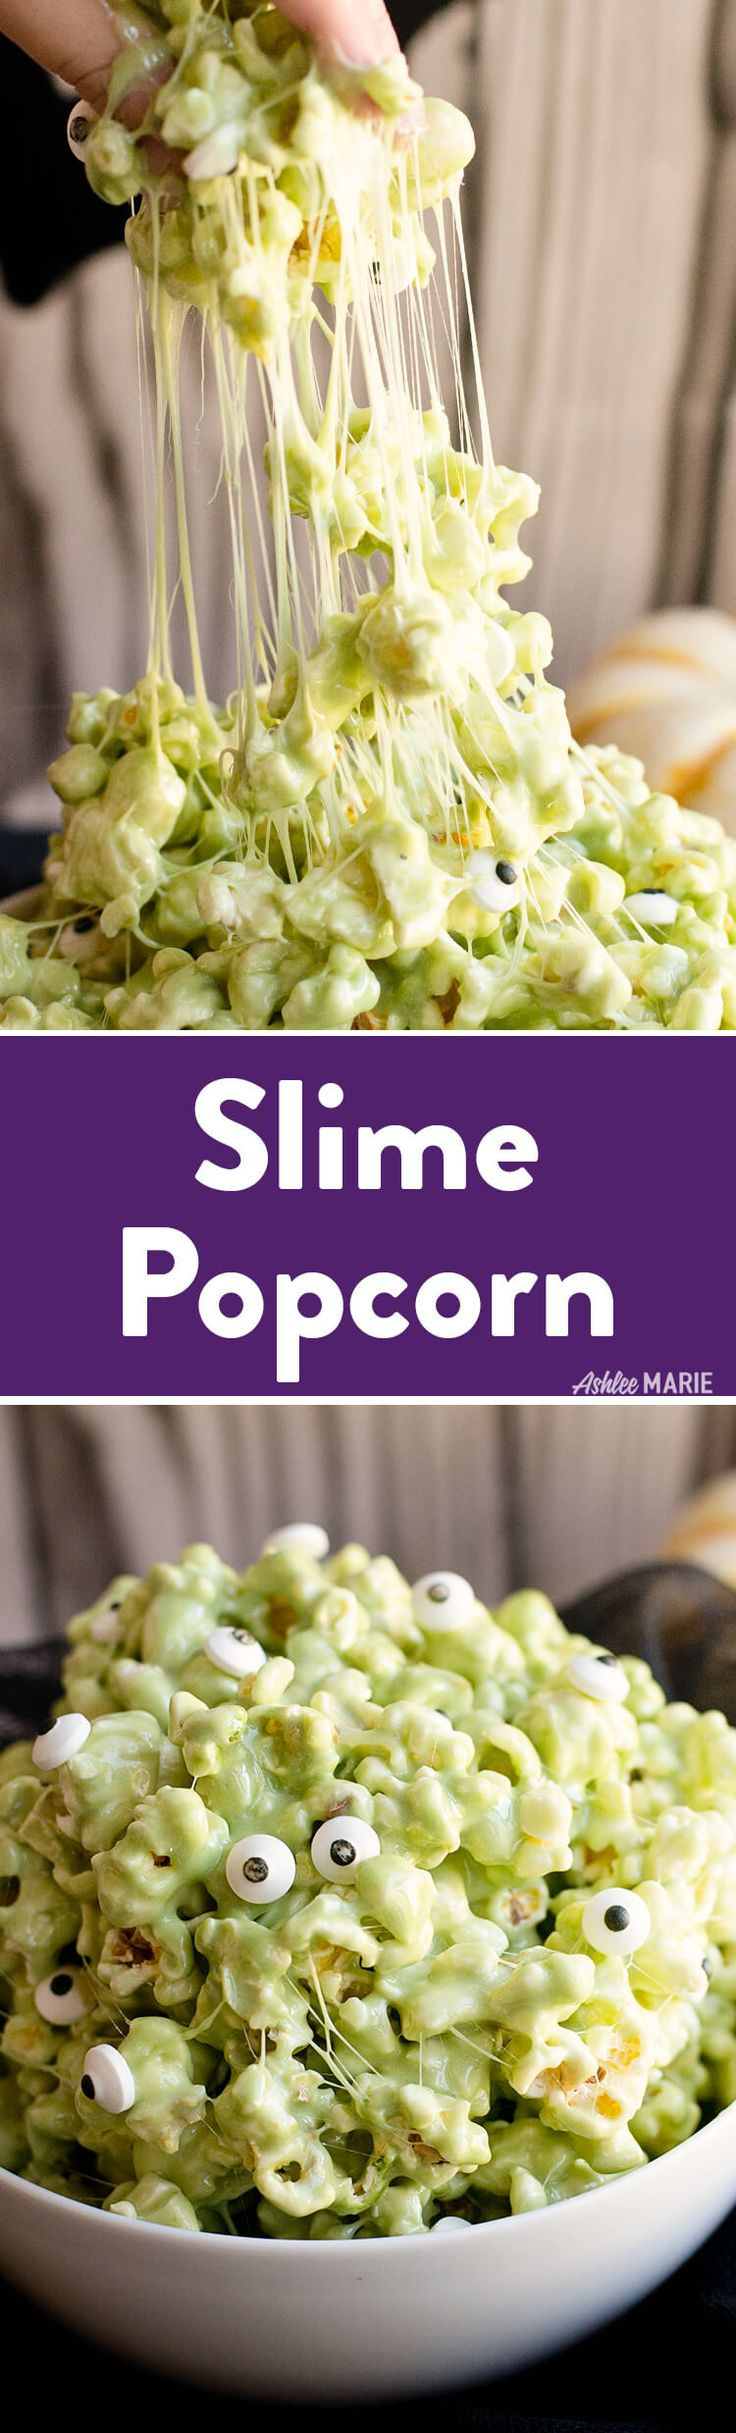 Marshmallow Slime Popcorn | Ashlee Marie | Fall | Halloween | Party Treats | #halloweentreats #halloweenparty